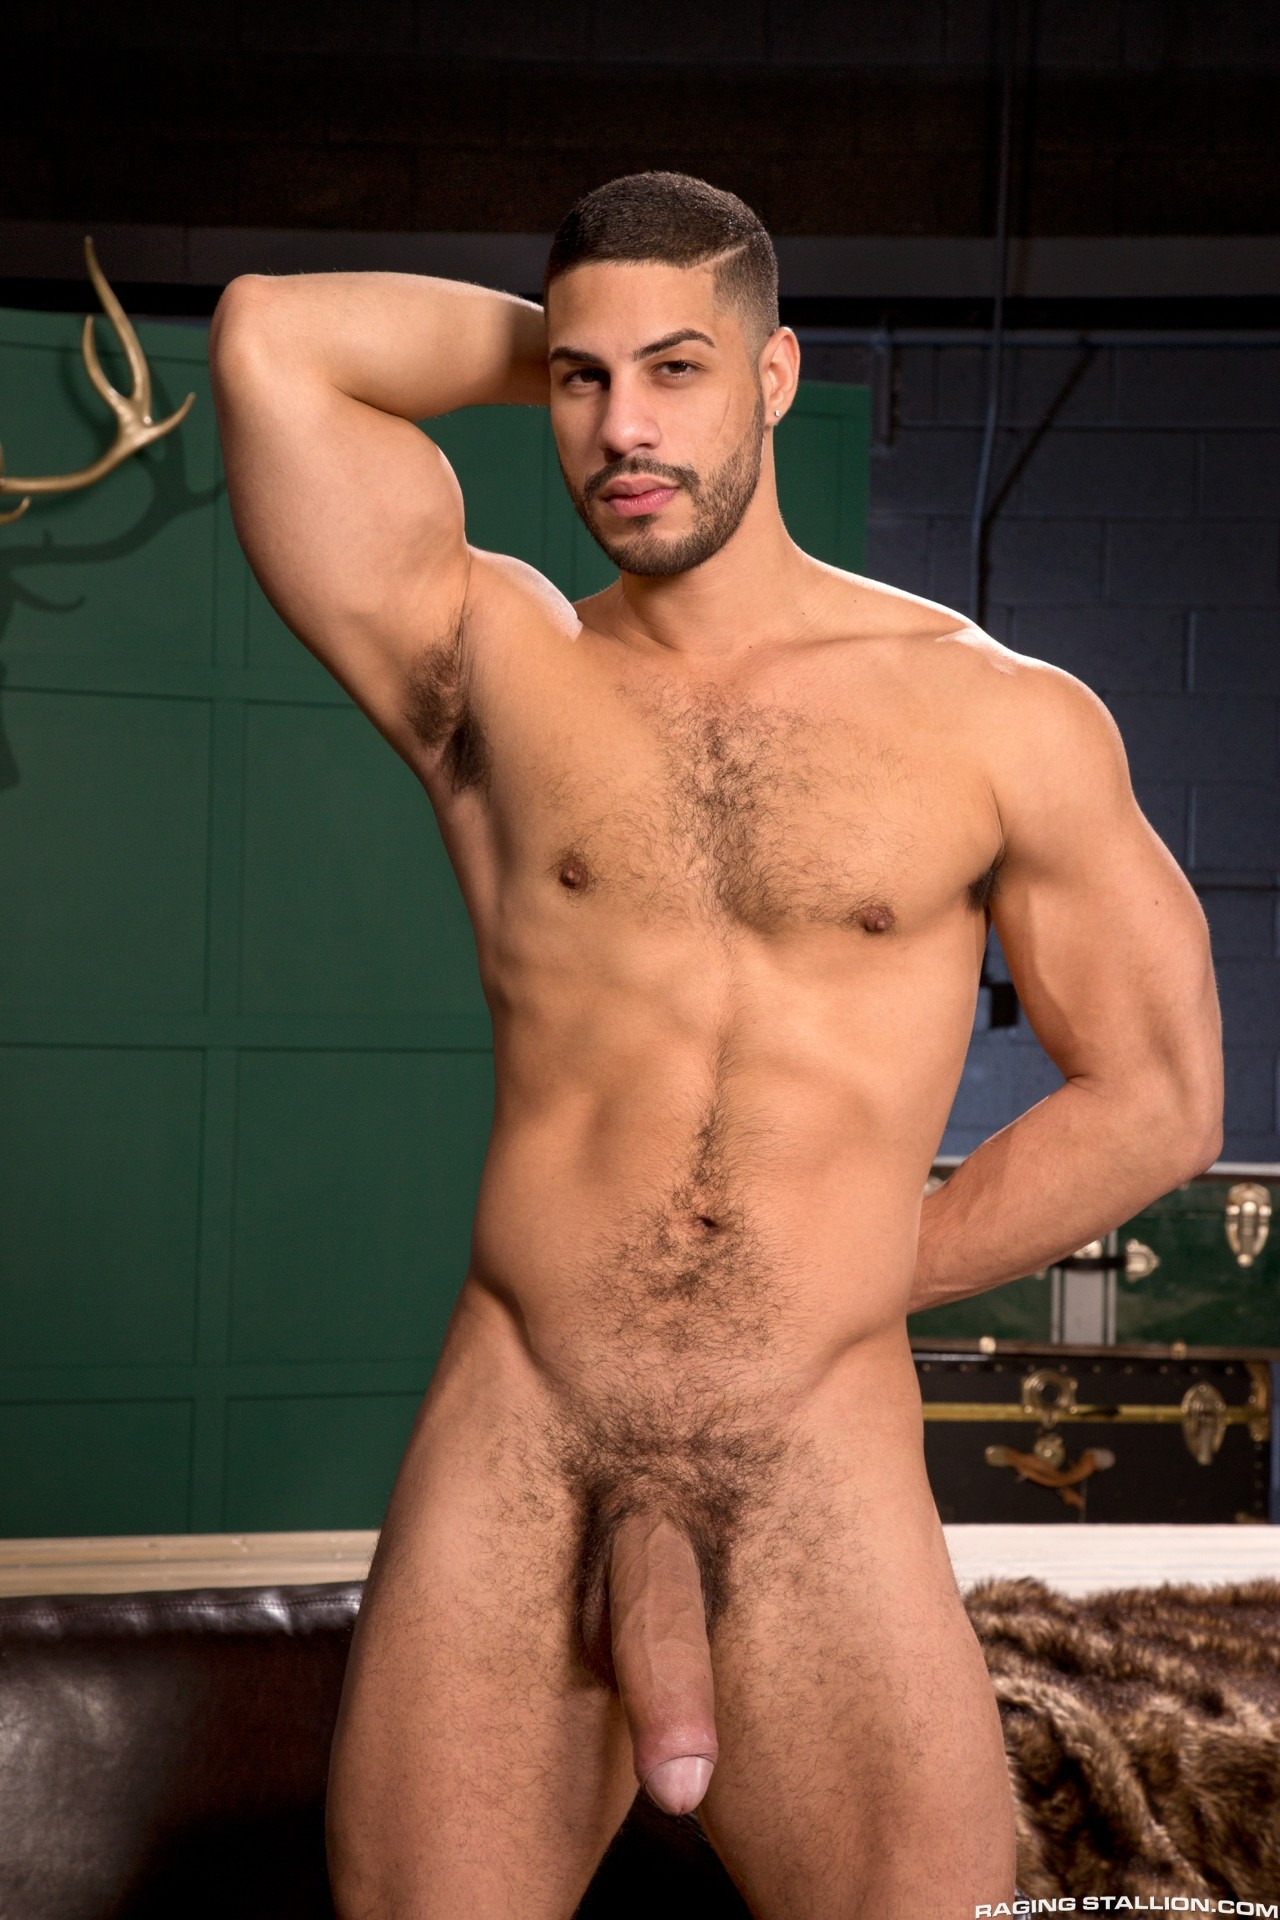 image Men fur sex and very close up young gay